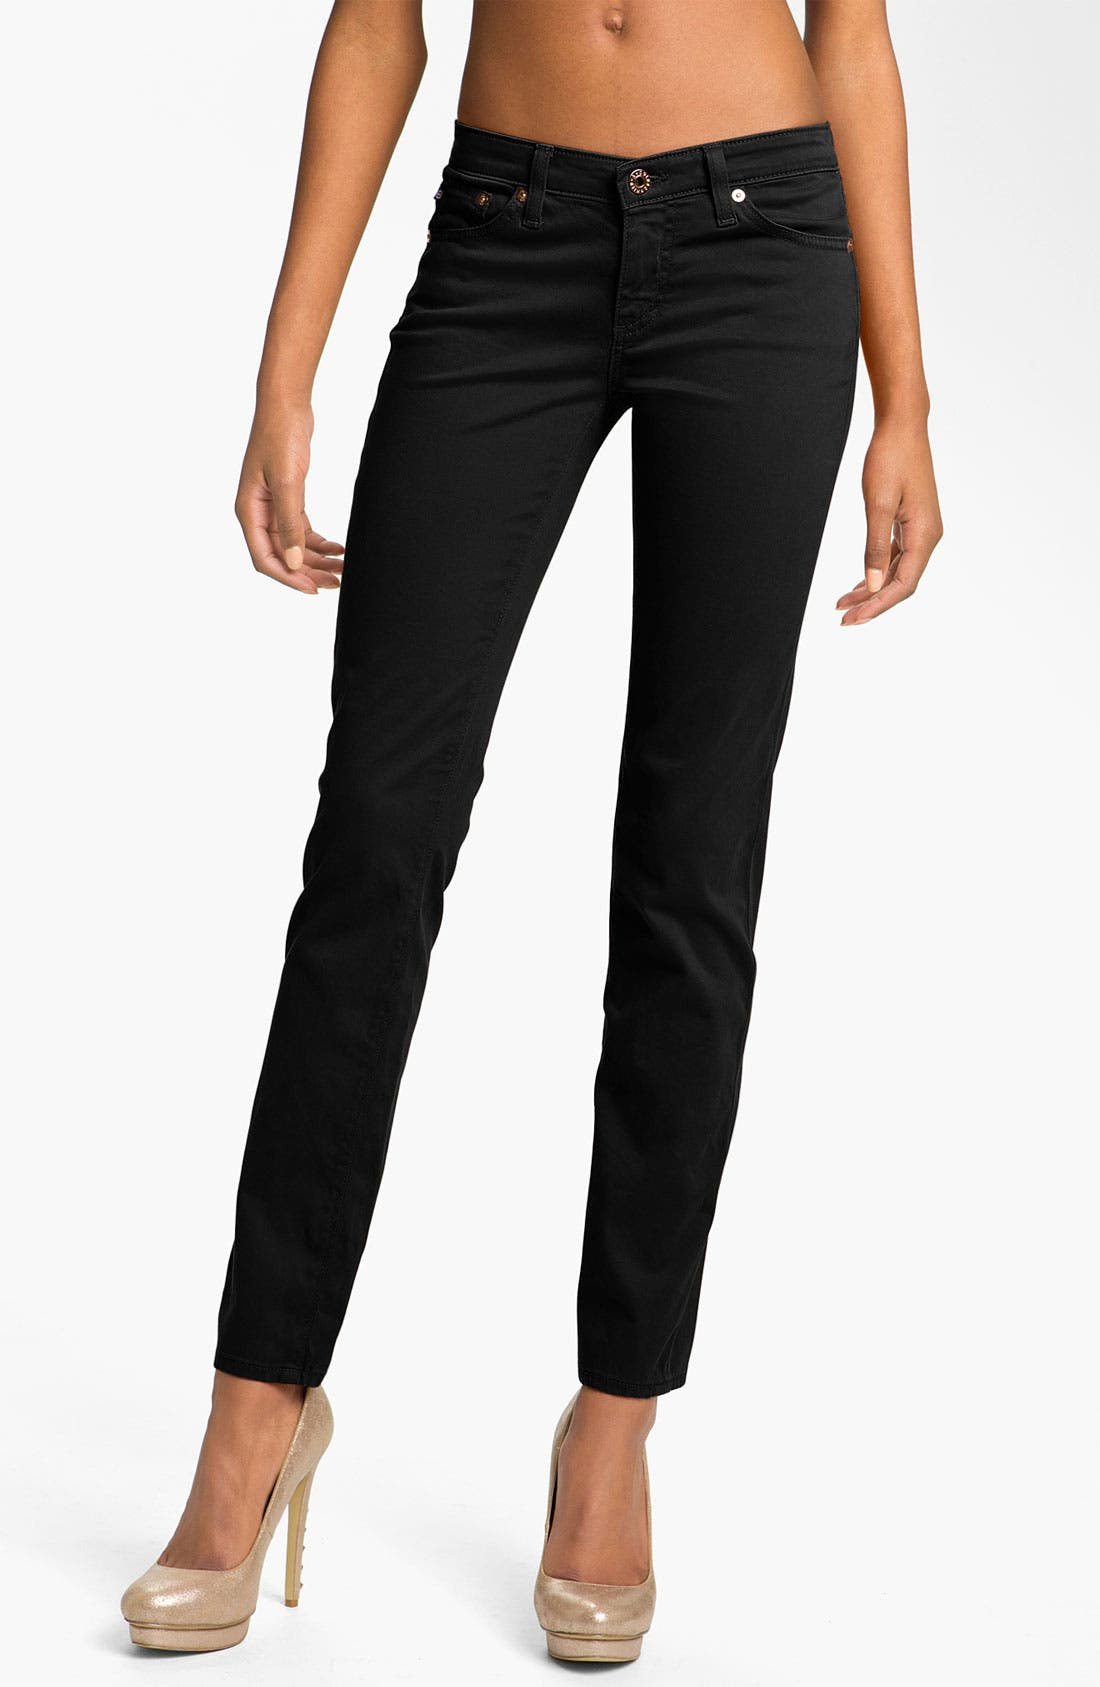 Alternate Image 1 Selected - AG Jeans 'Stilt' Skinny Ankle Jeans (Super Black Wash)